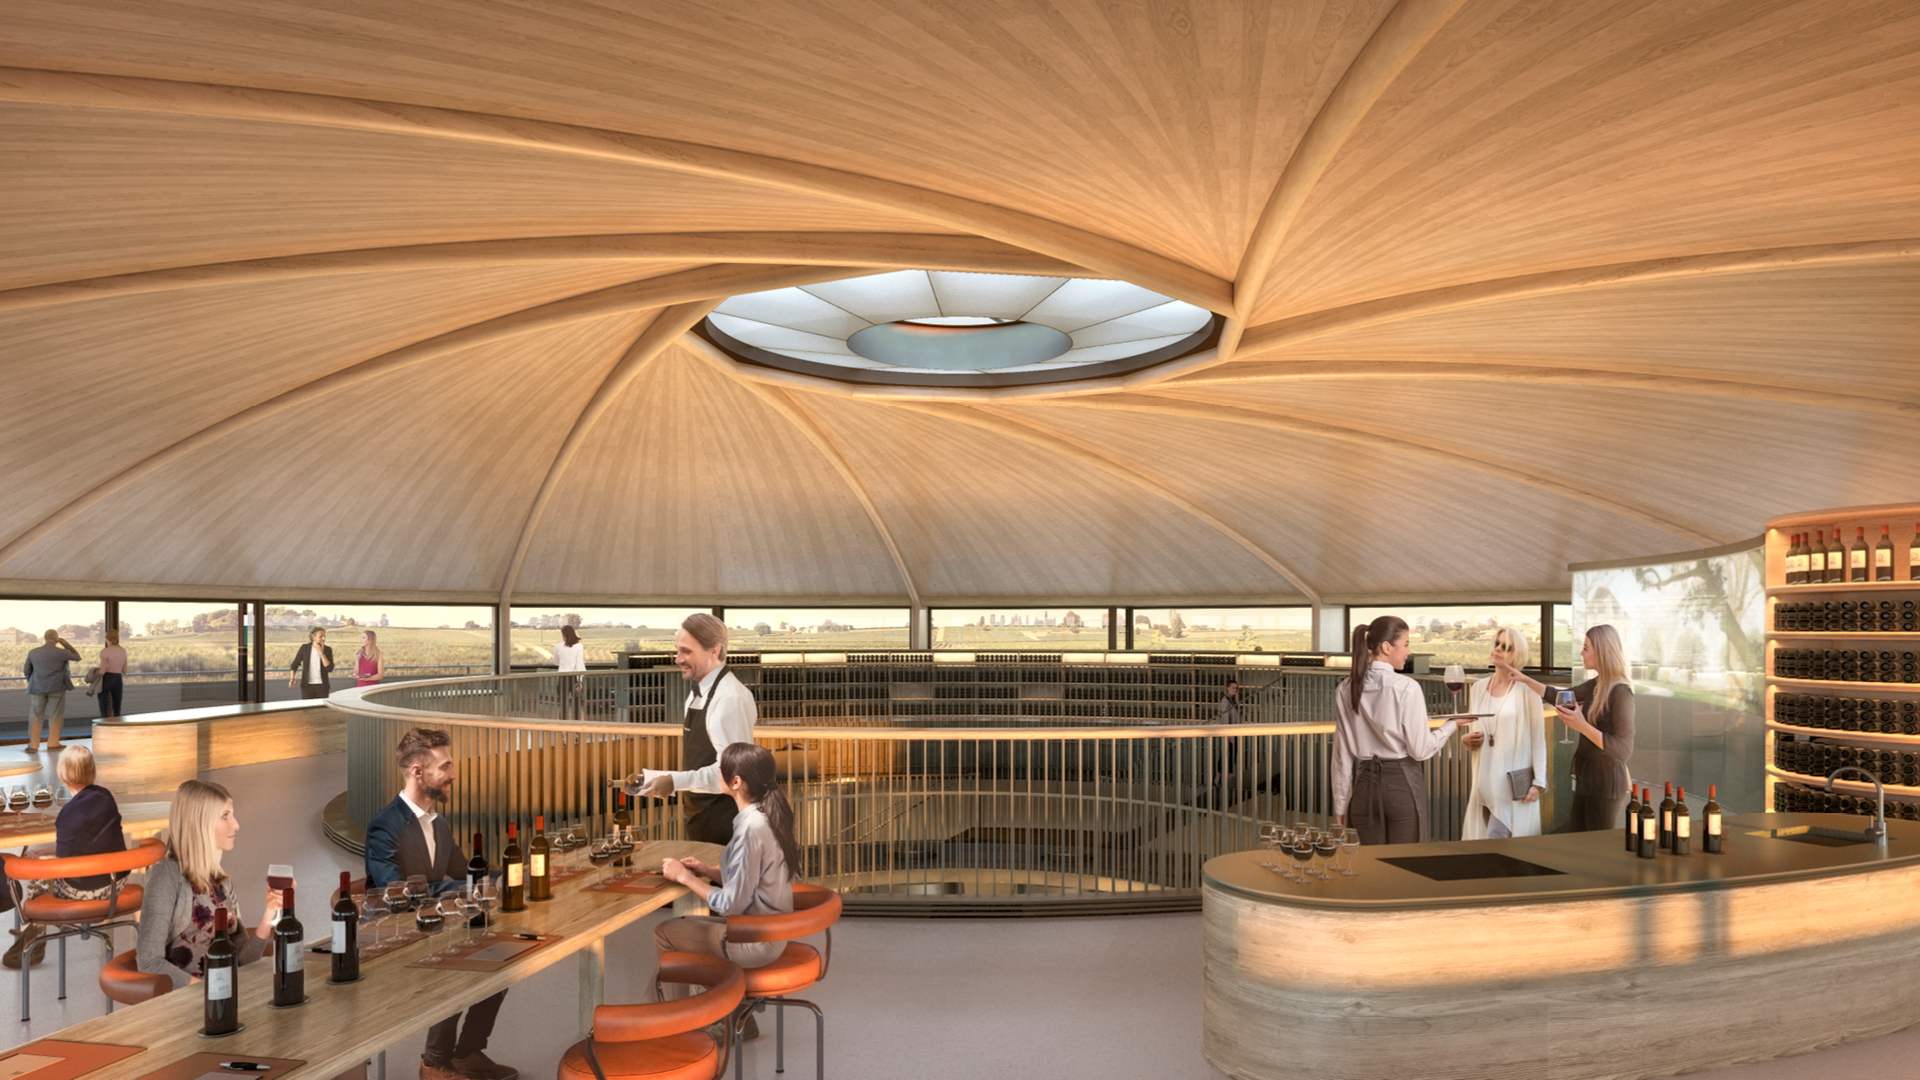 Le Dôme winery, Saint-Émilion, France | Foster + Partners | STIRworld